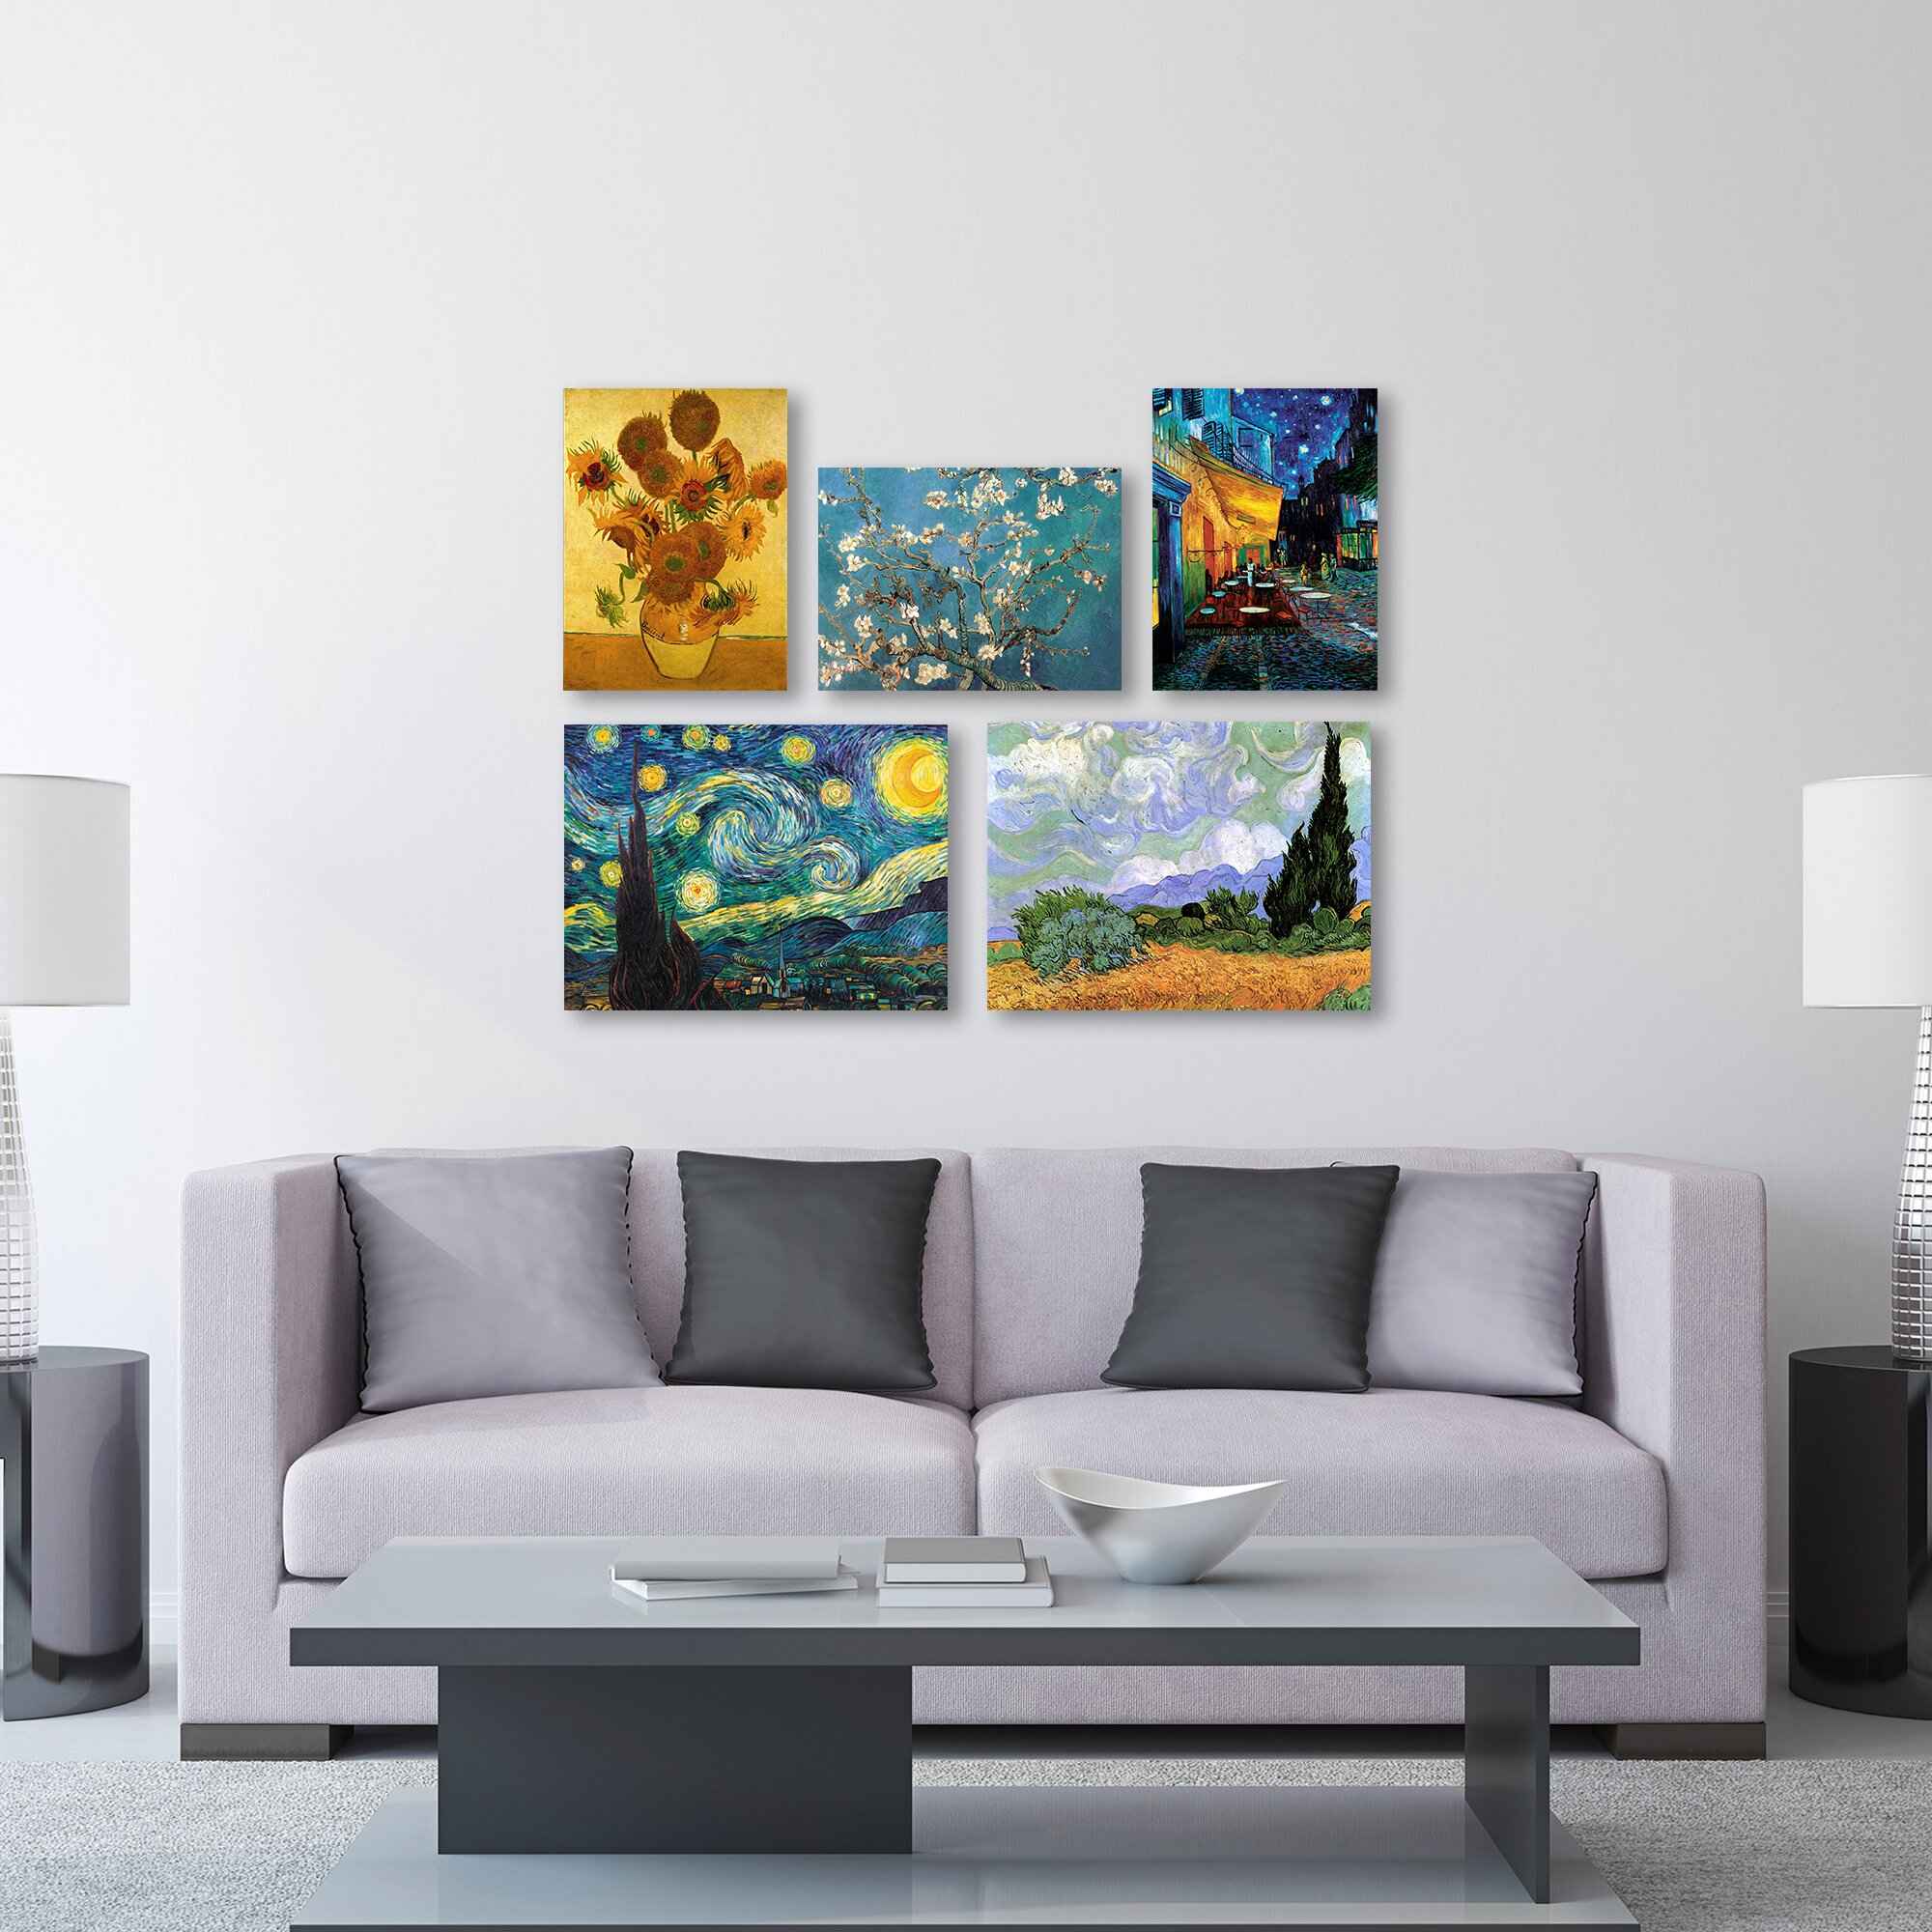 Trademark Art 5 Piece Graphic Art by Vincent Van Gogh Painting Print on Wrapp